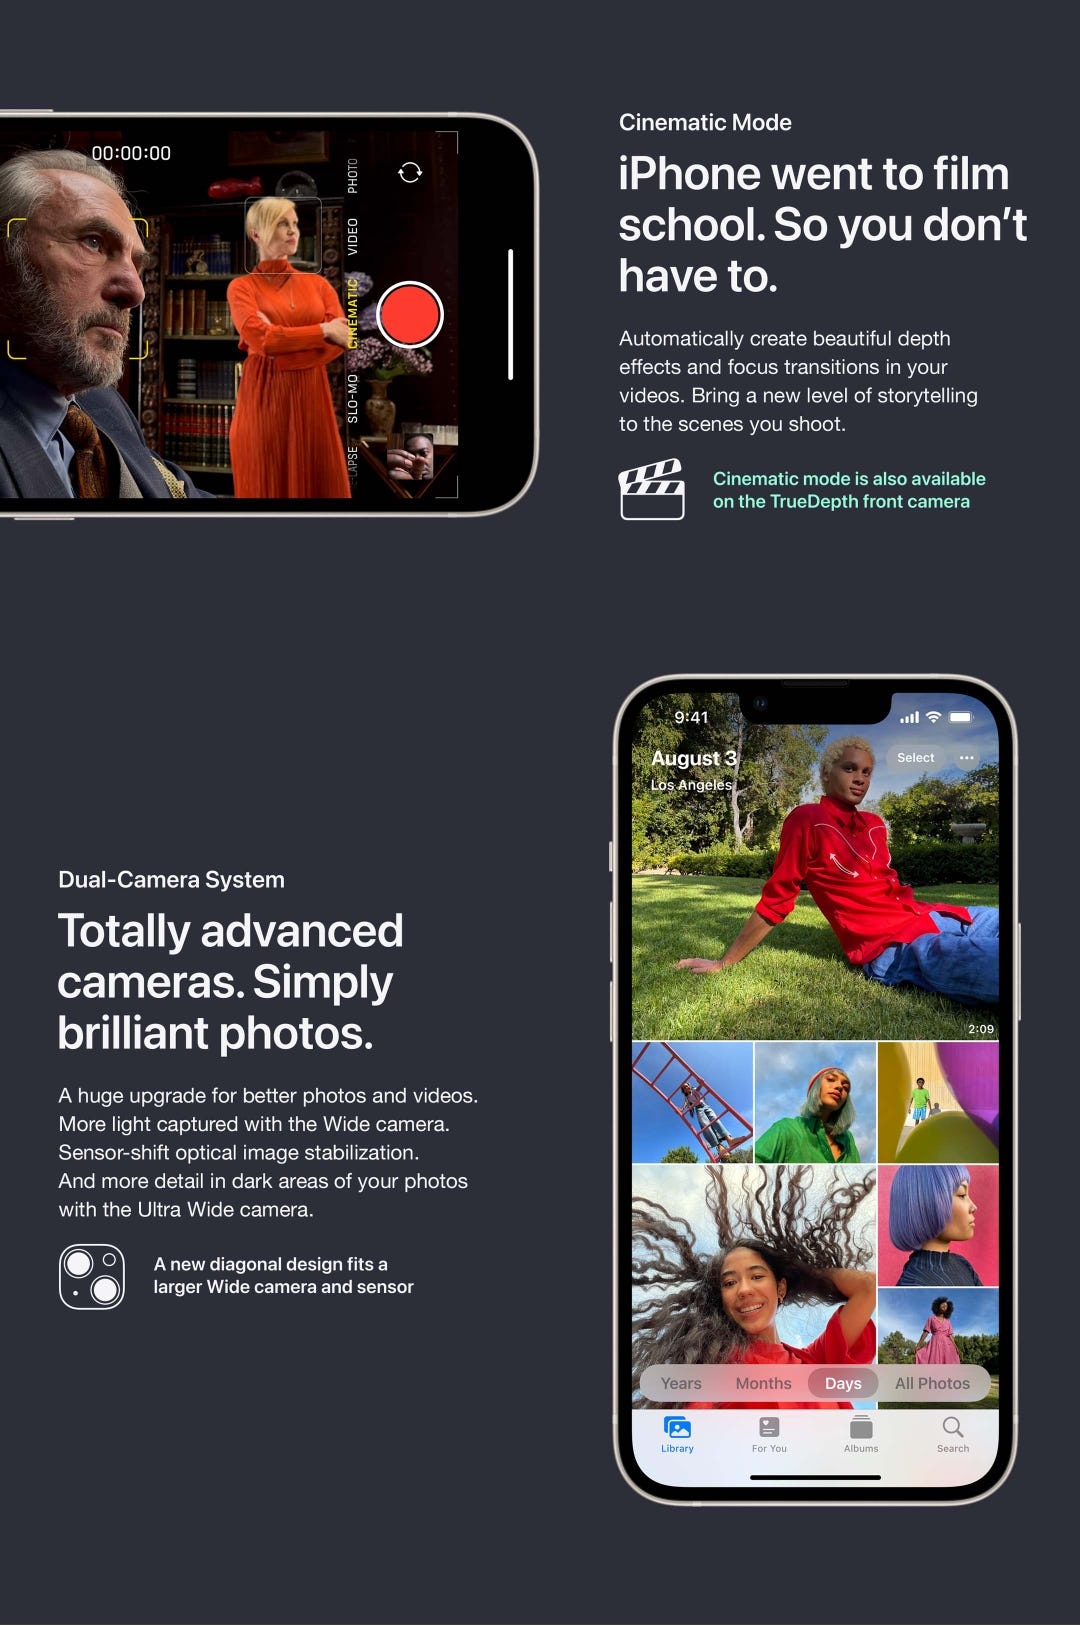 Automatically create beautiful depth effects and focus transitions in your videos.